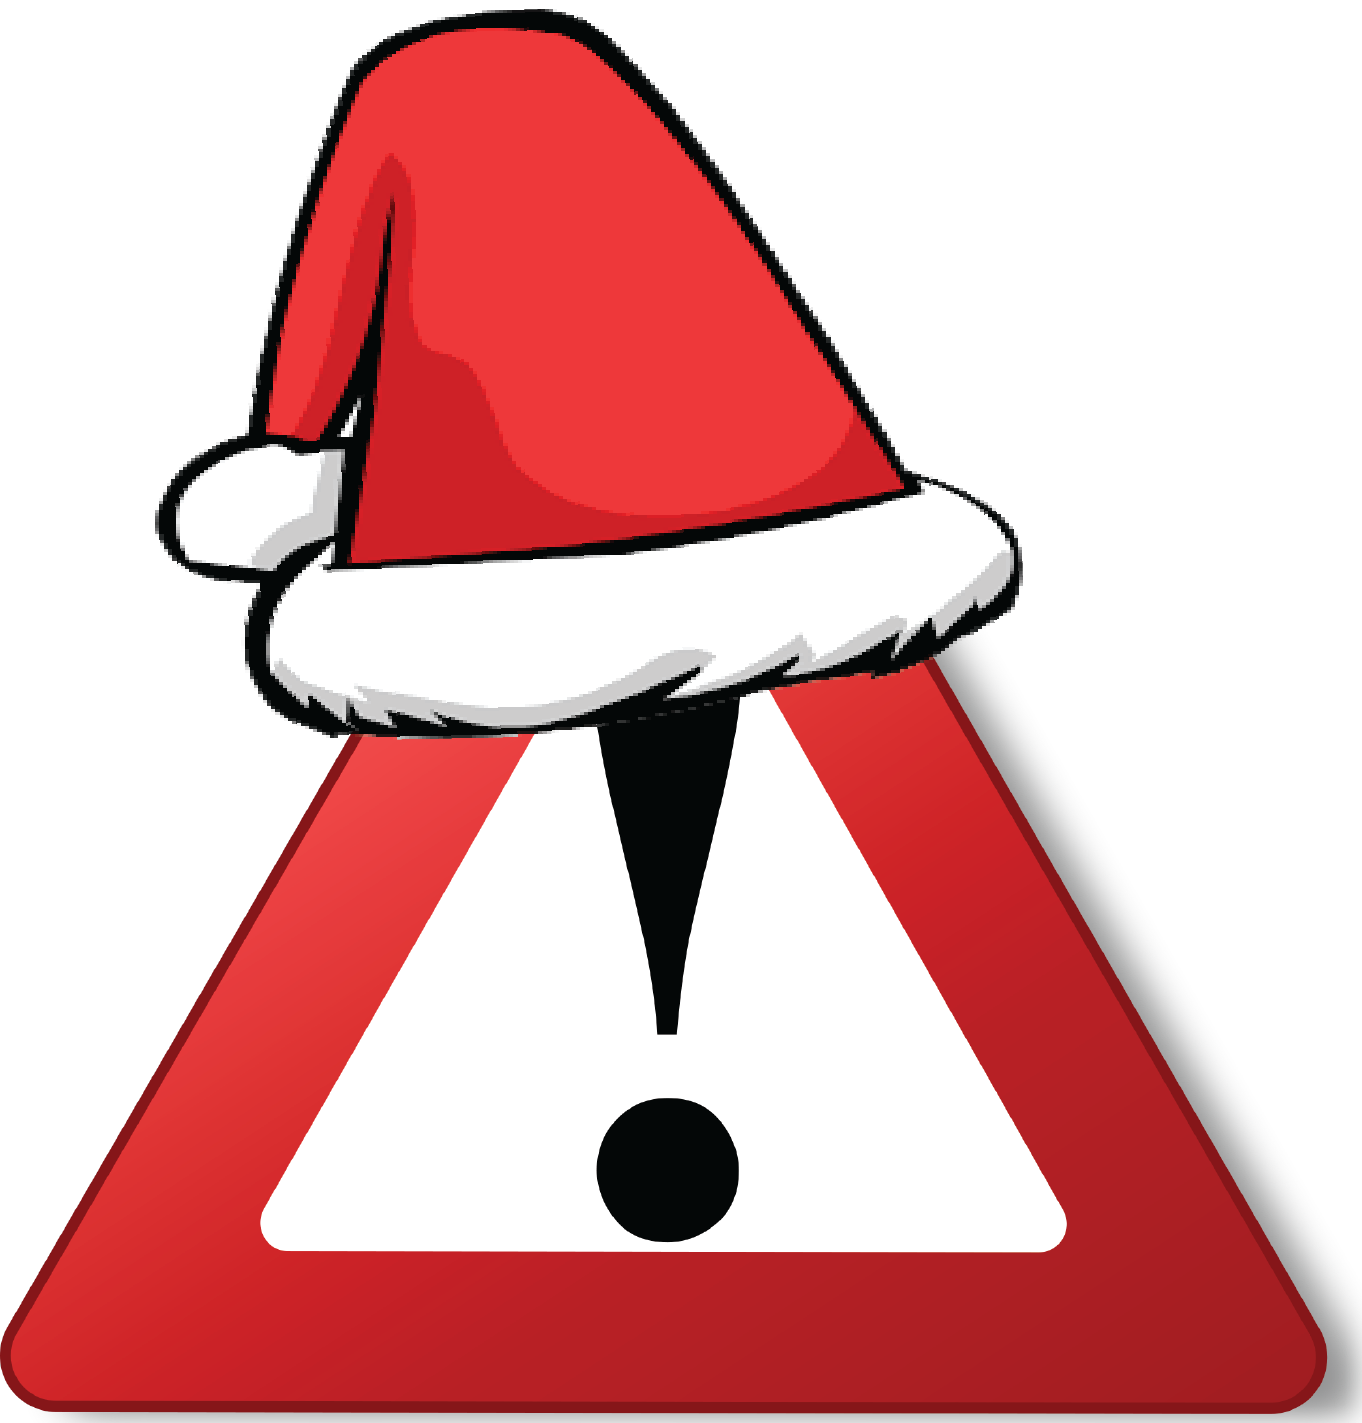 Slip clipart industrial accident. Maintain warehouse safety during